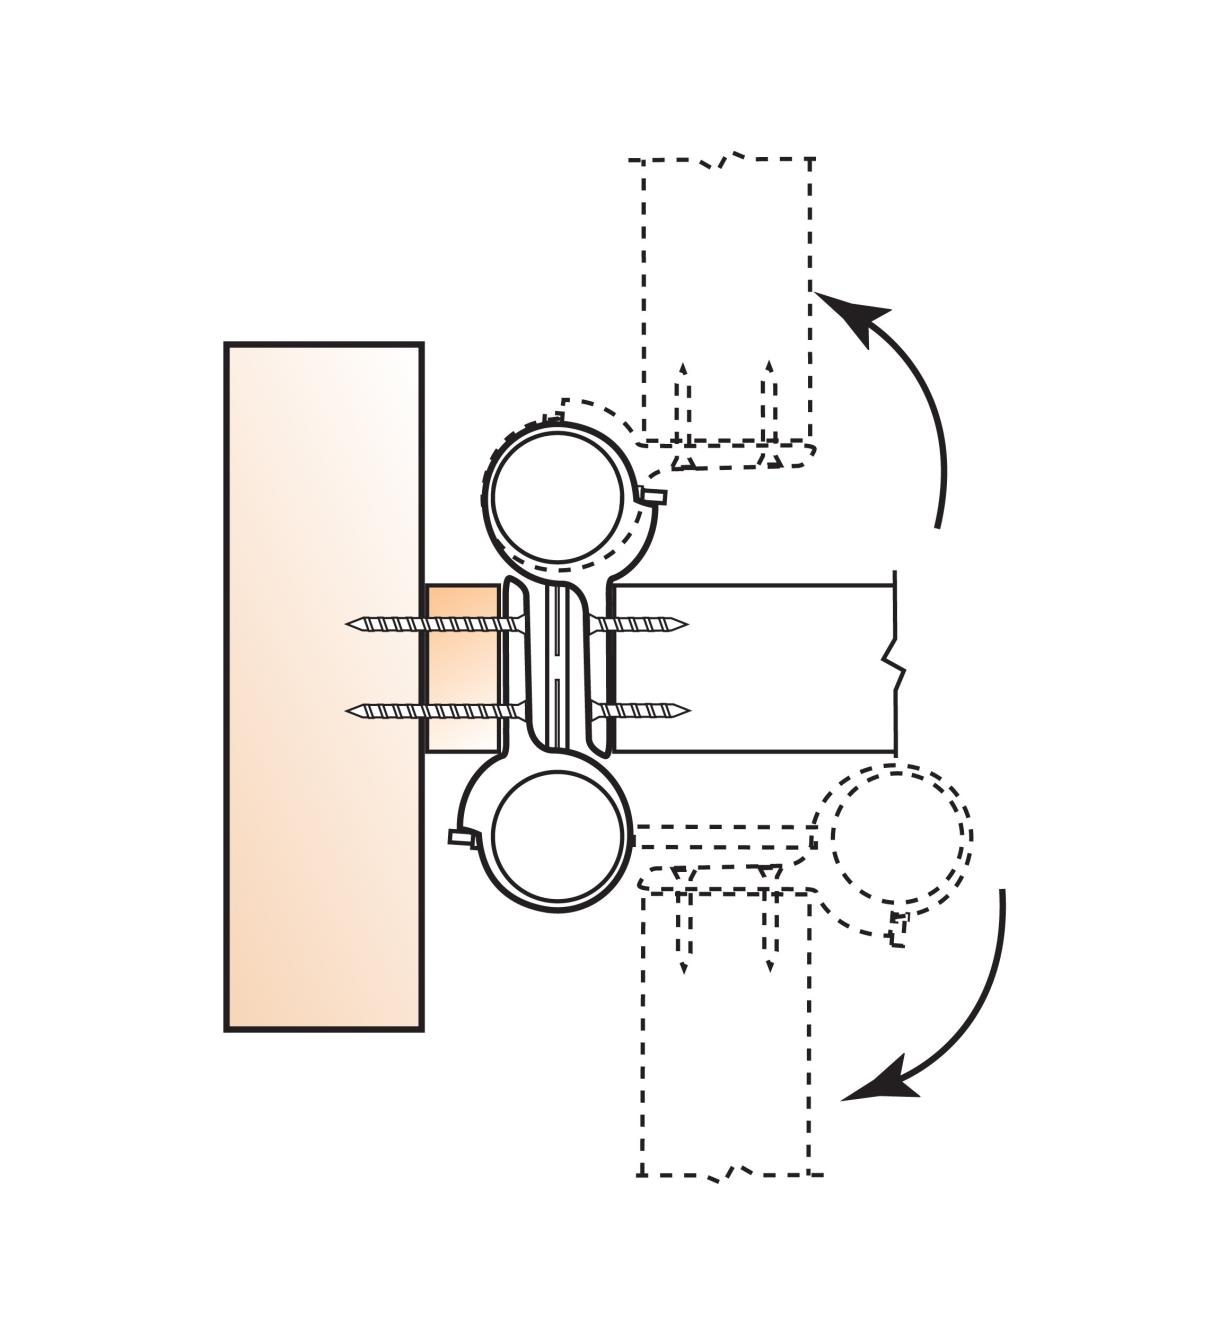 Diagram shows how Double Acting Hinges are installed on a door